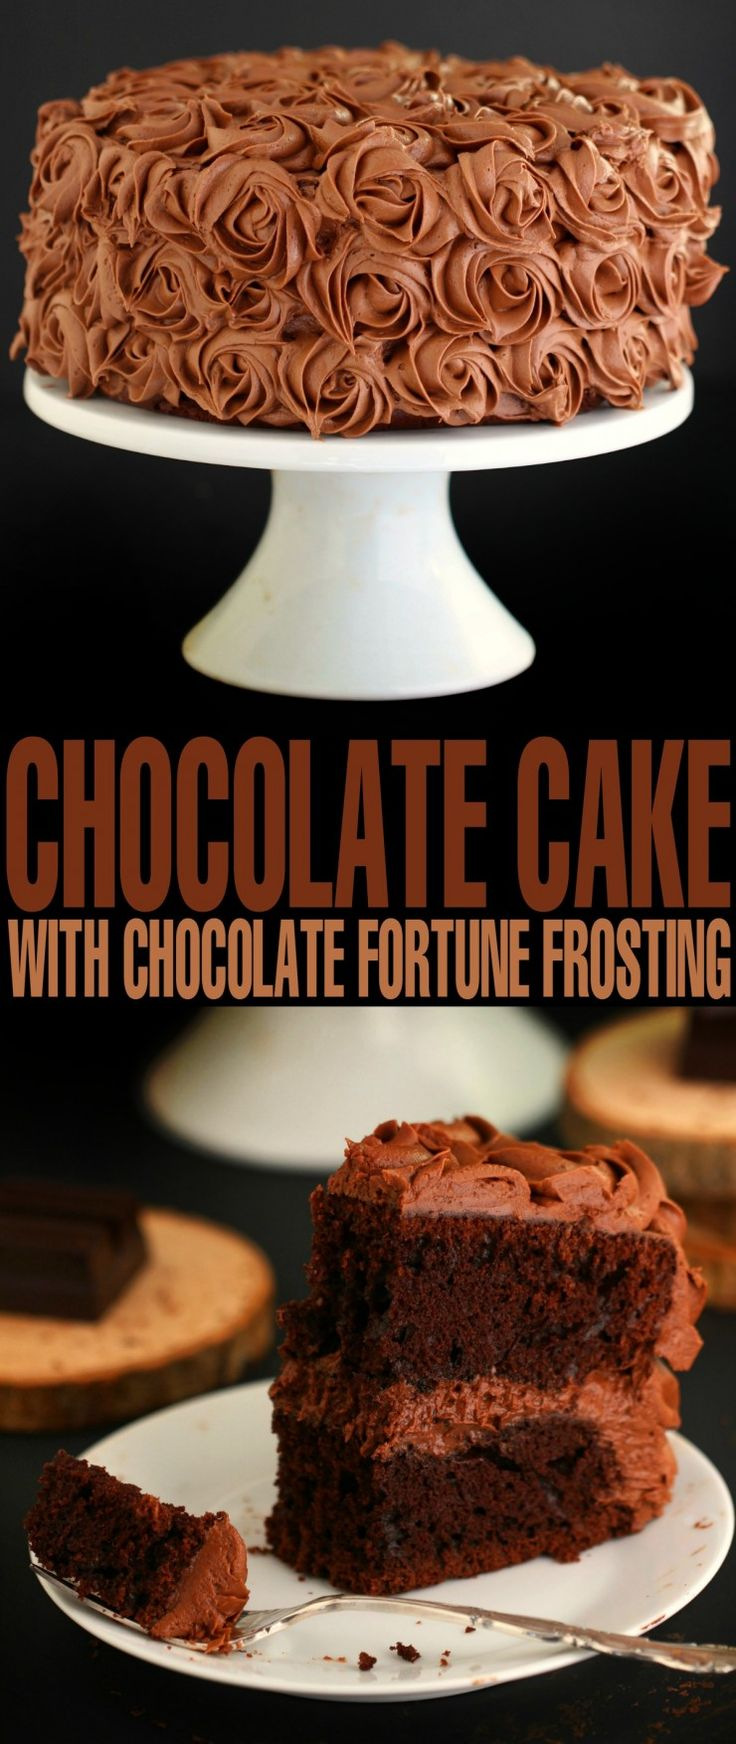 This recipe for Chocolate Cake with Chocolate Fortune Frosting is one of my Grandmothers recipes. I've revamped it to make it moist and delicious, keeping the incredible frosting the same.